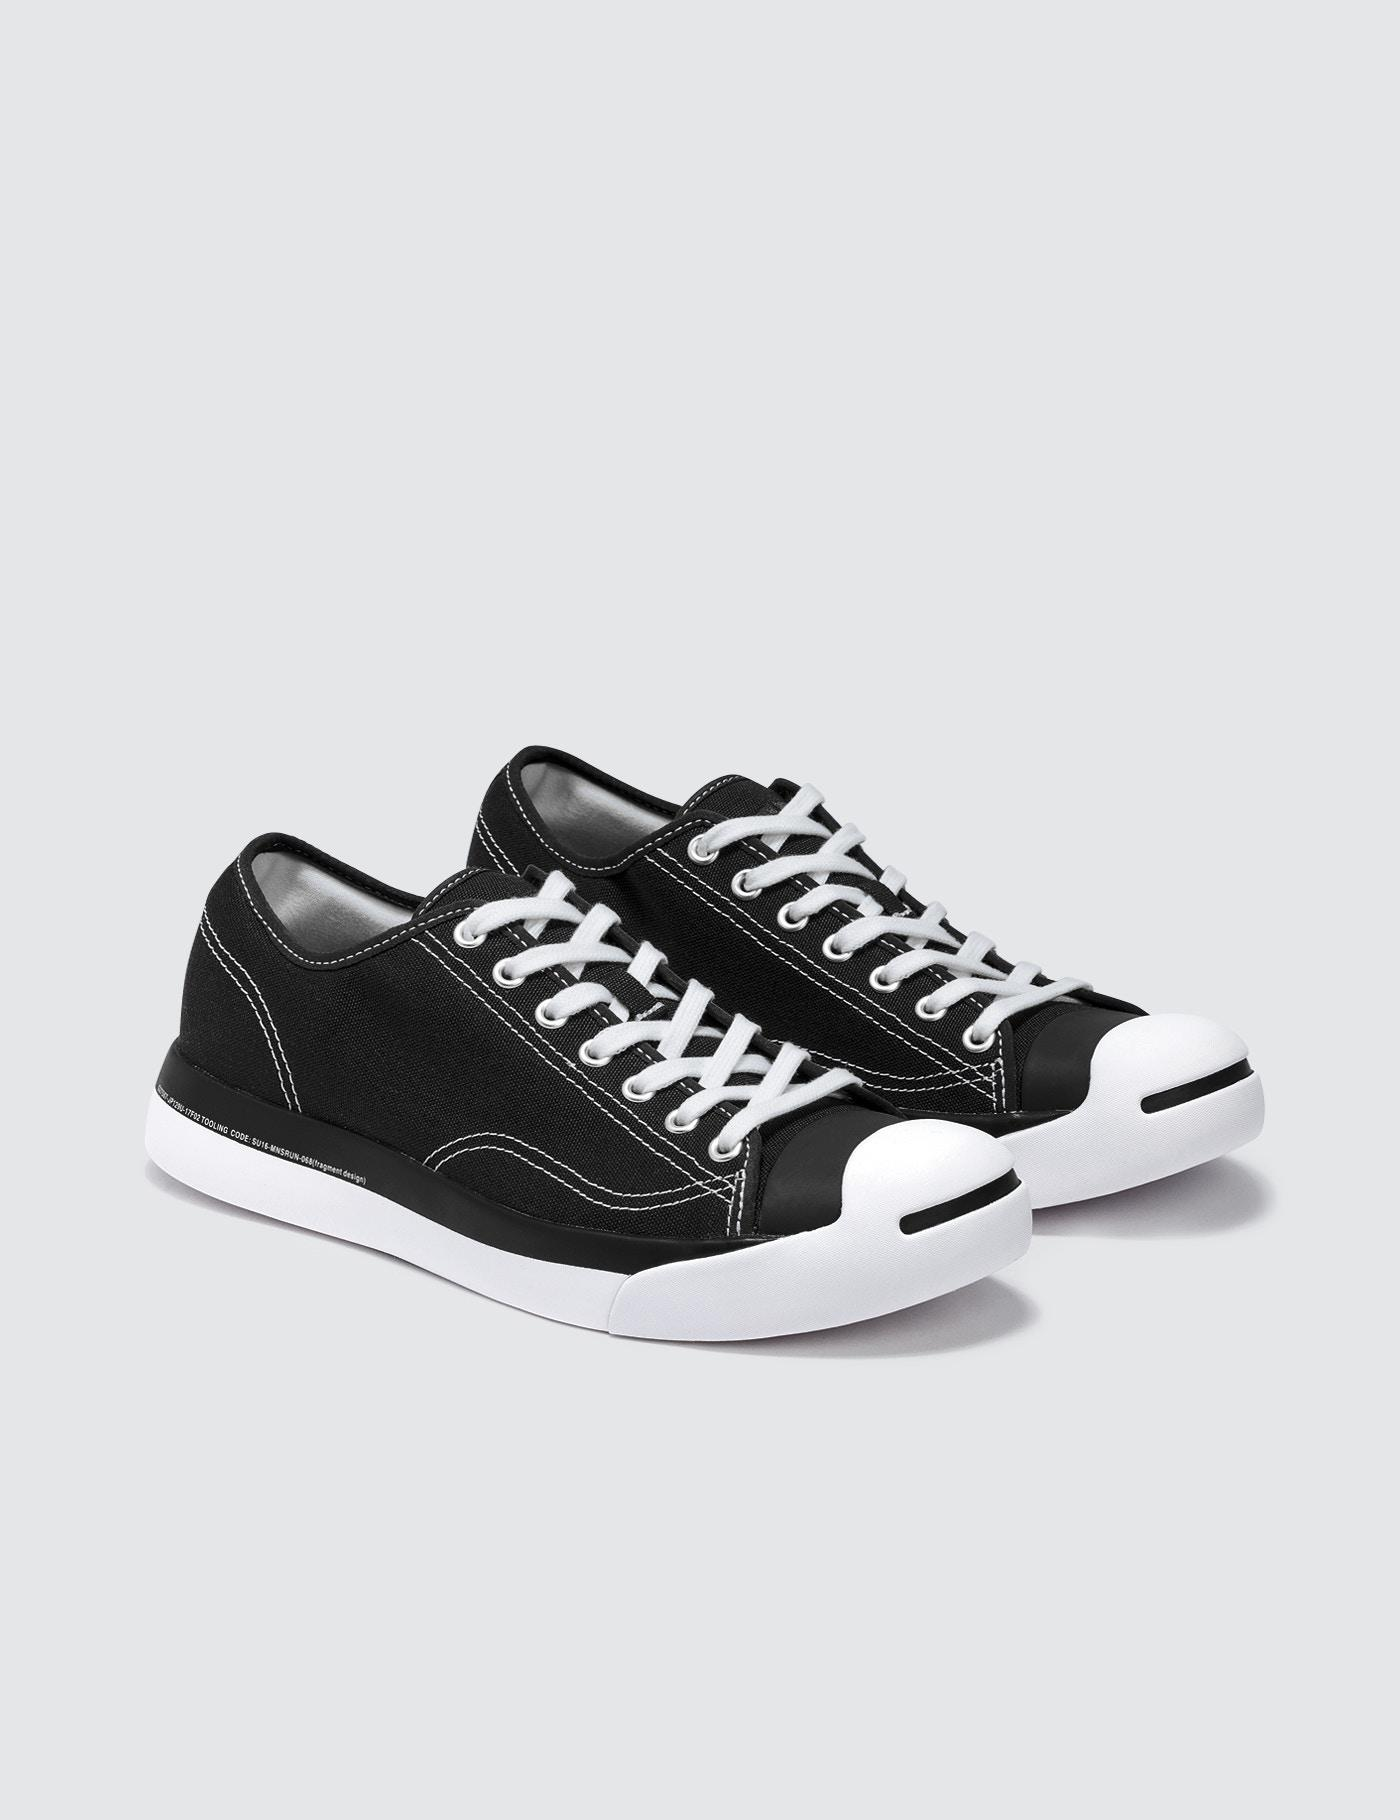 64b419b9a0c2 Lyst - Converse Fragment X Jack Purcell Modern Ox in Black for Men